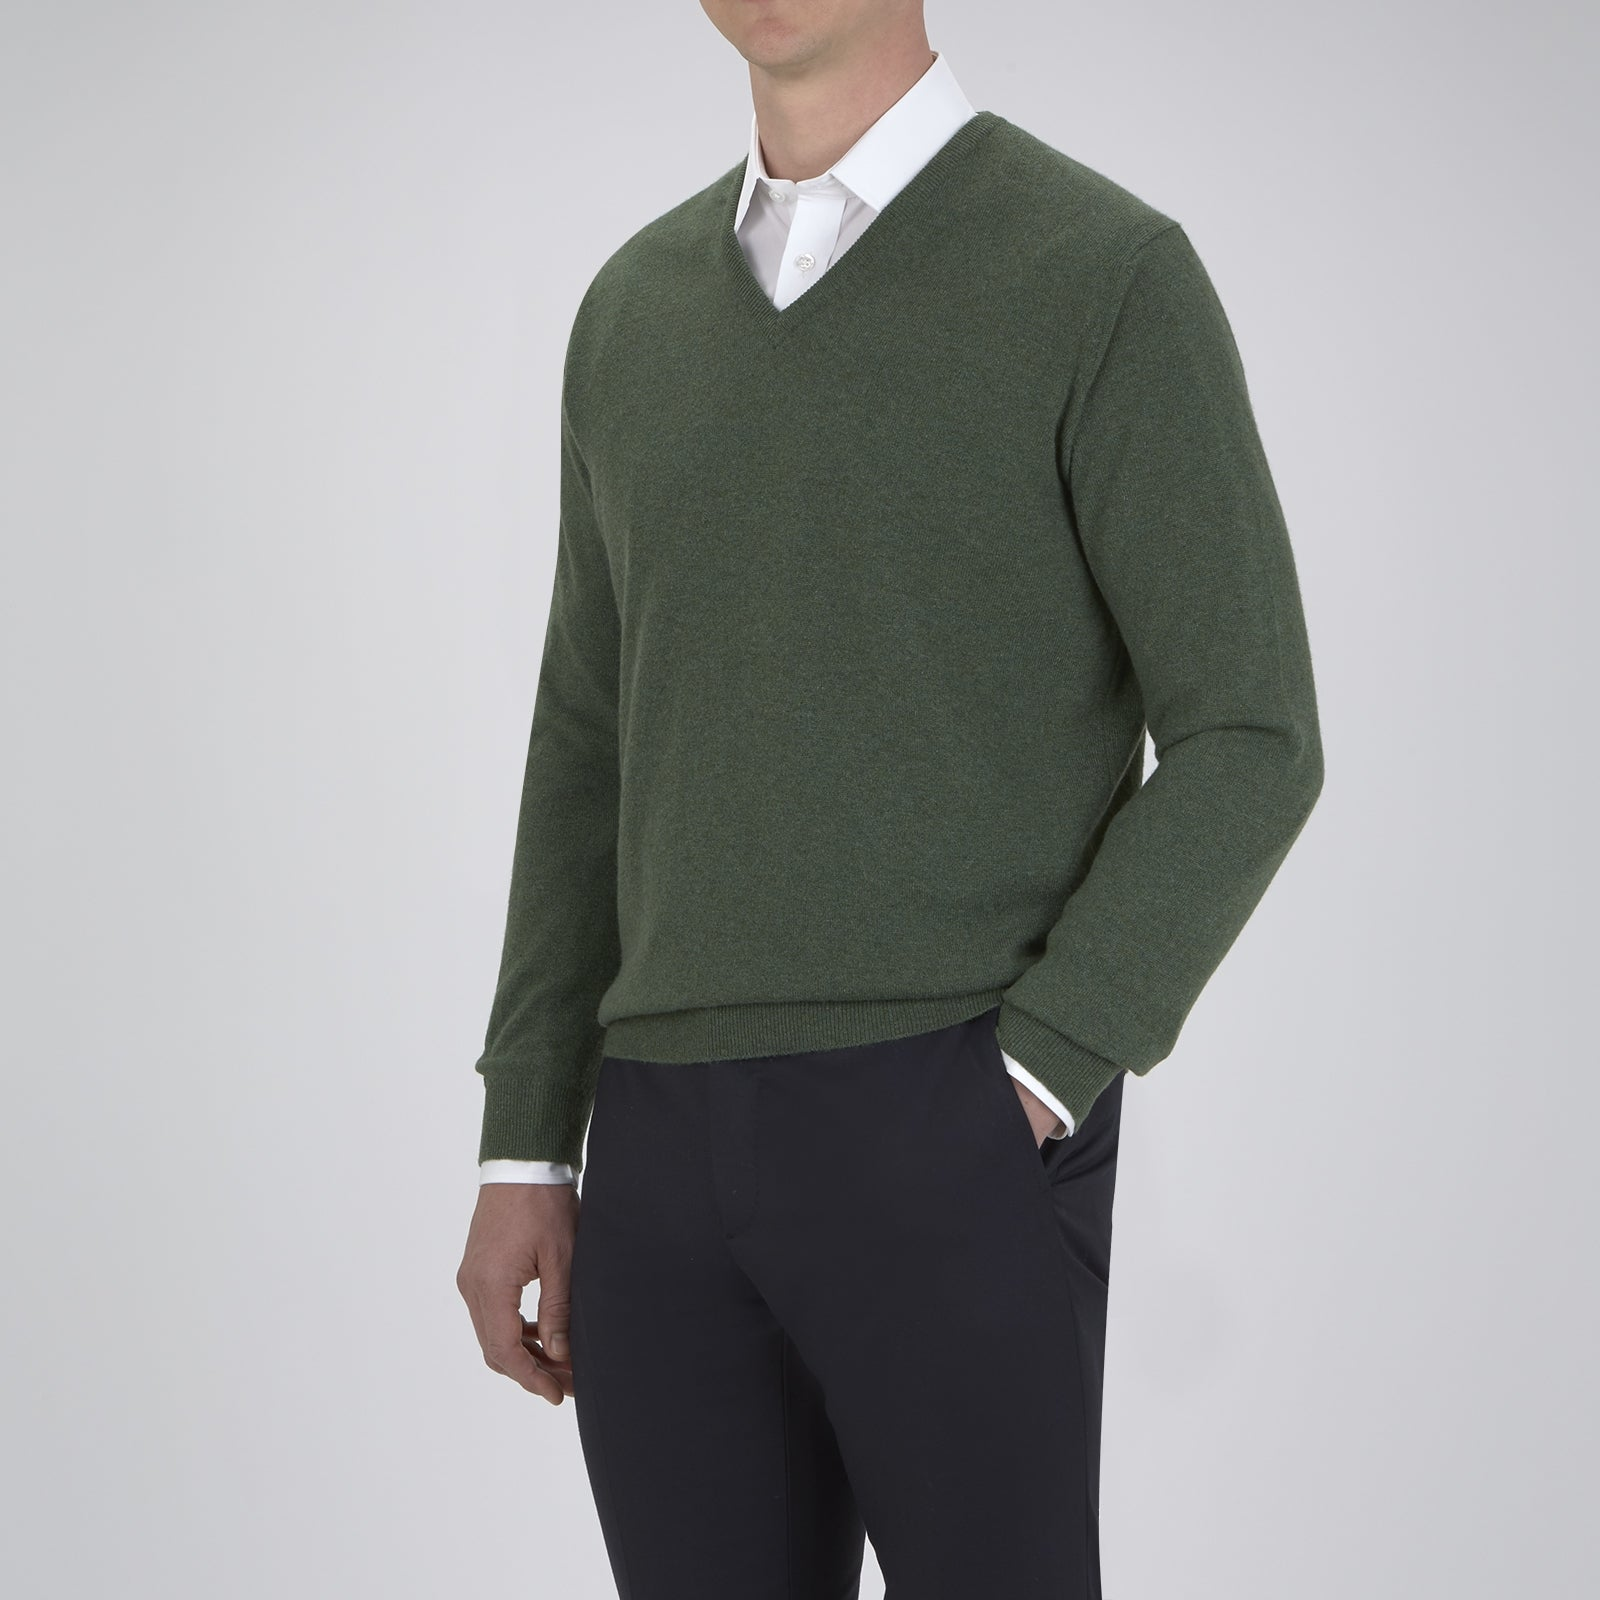 Green V-Neck Cashmere Jumper